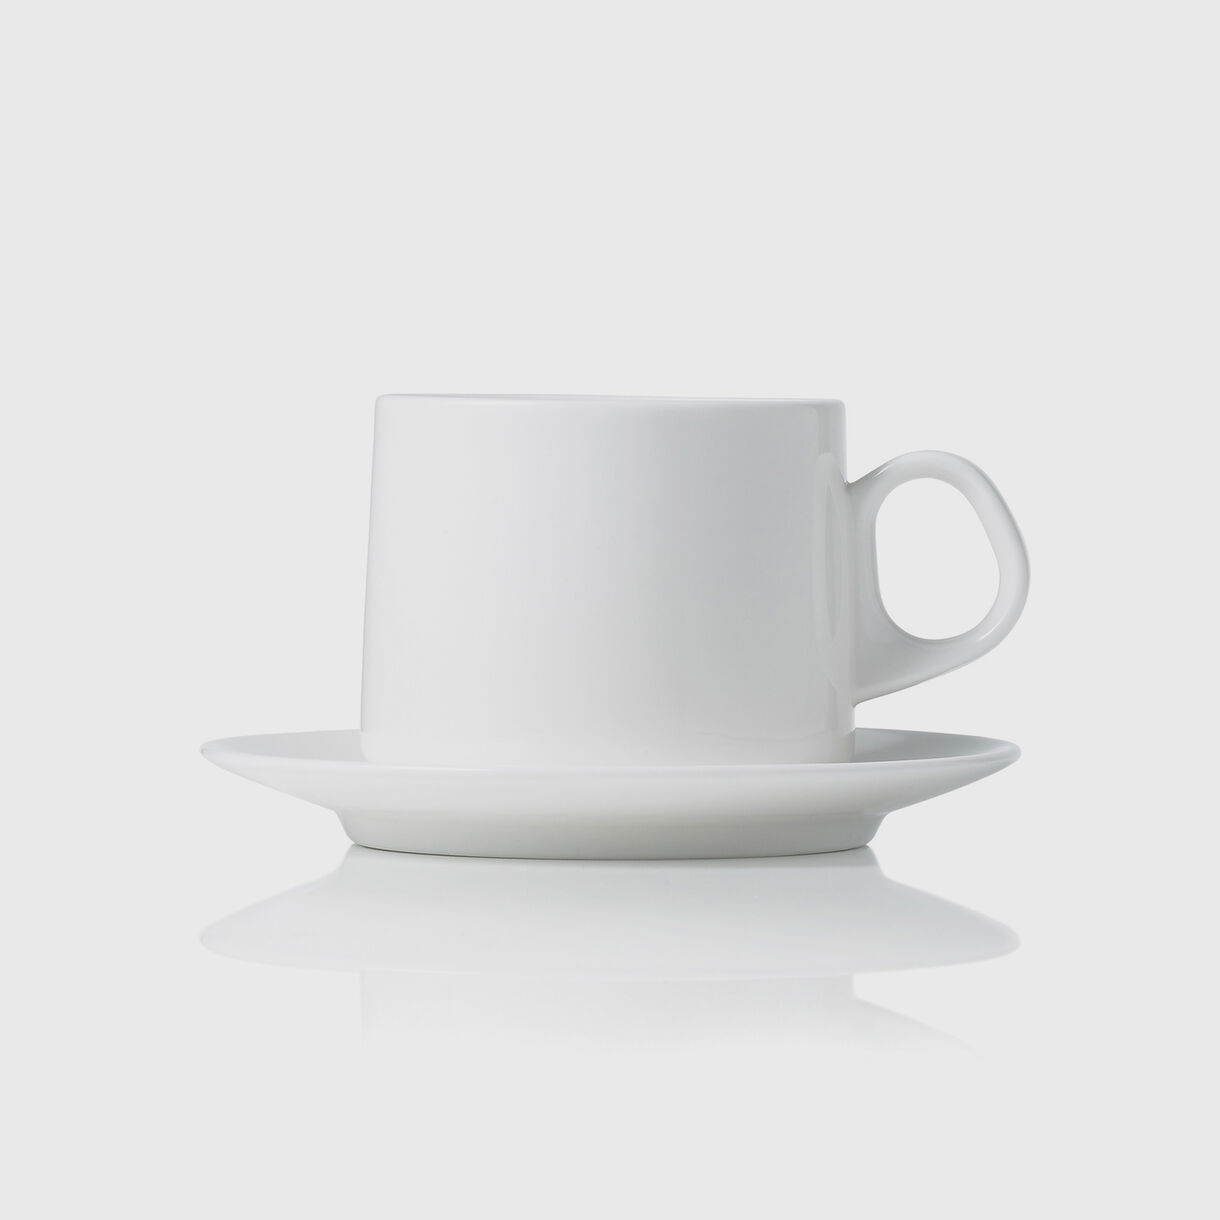 David Caon by Noritake Cup and Saucer